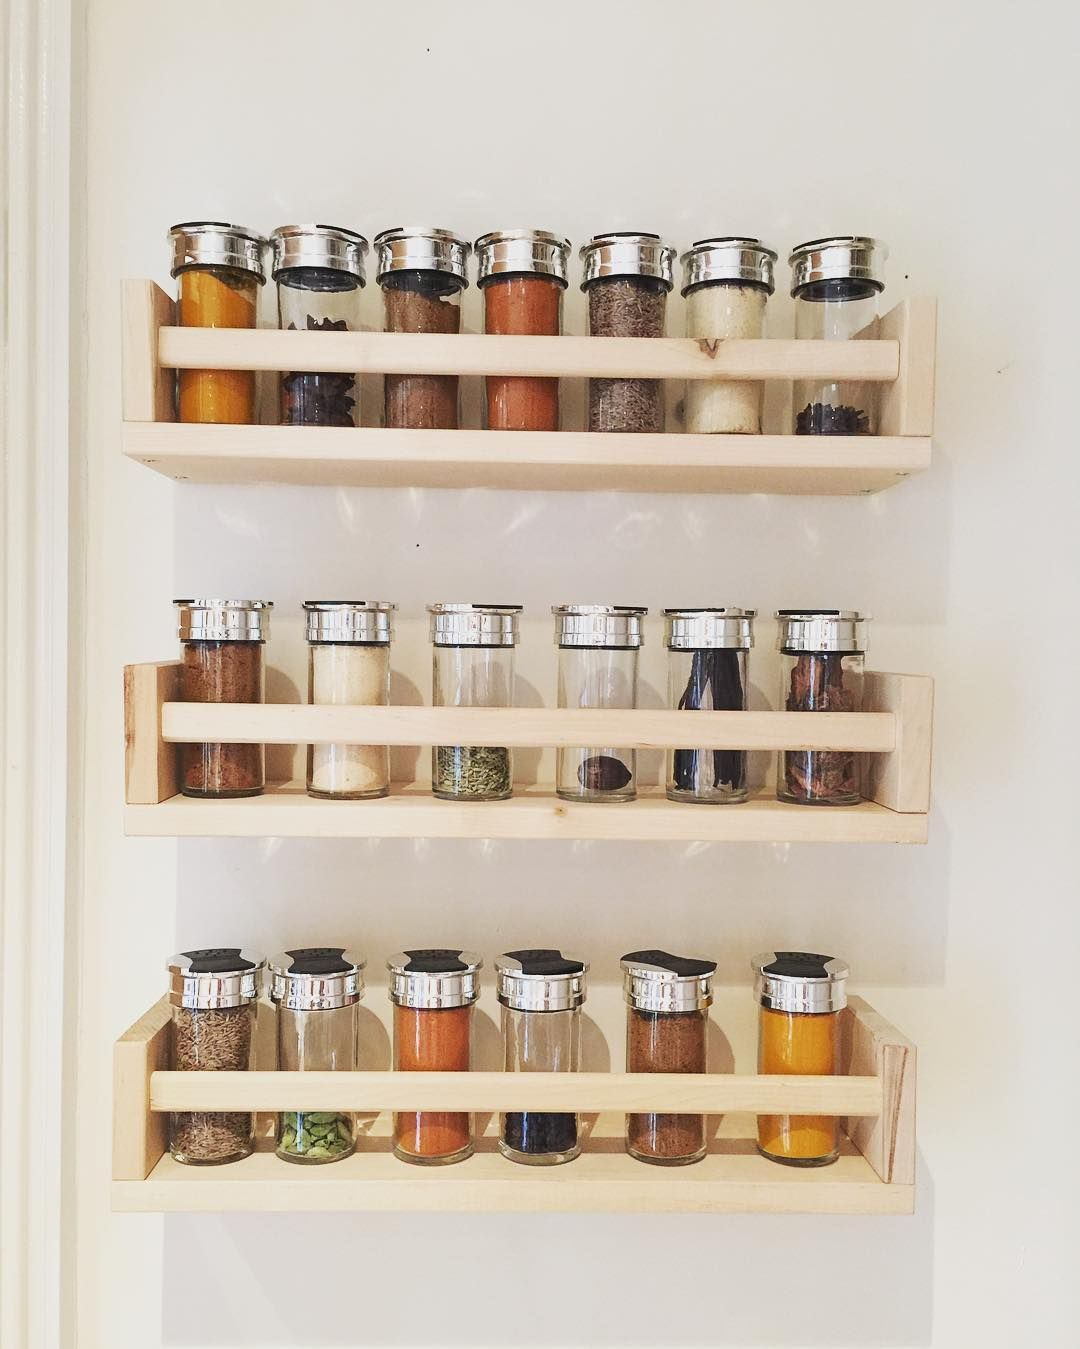 Kitchen Pantry Cabinet Organization Ideas Plate Rack Shelf: 27 Spice Rack Ideas For Small Kitchen And Pantry In 2019